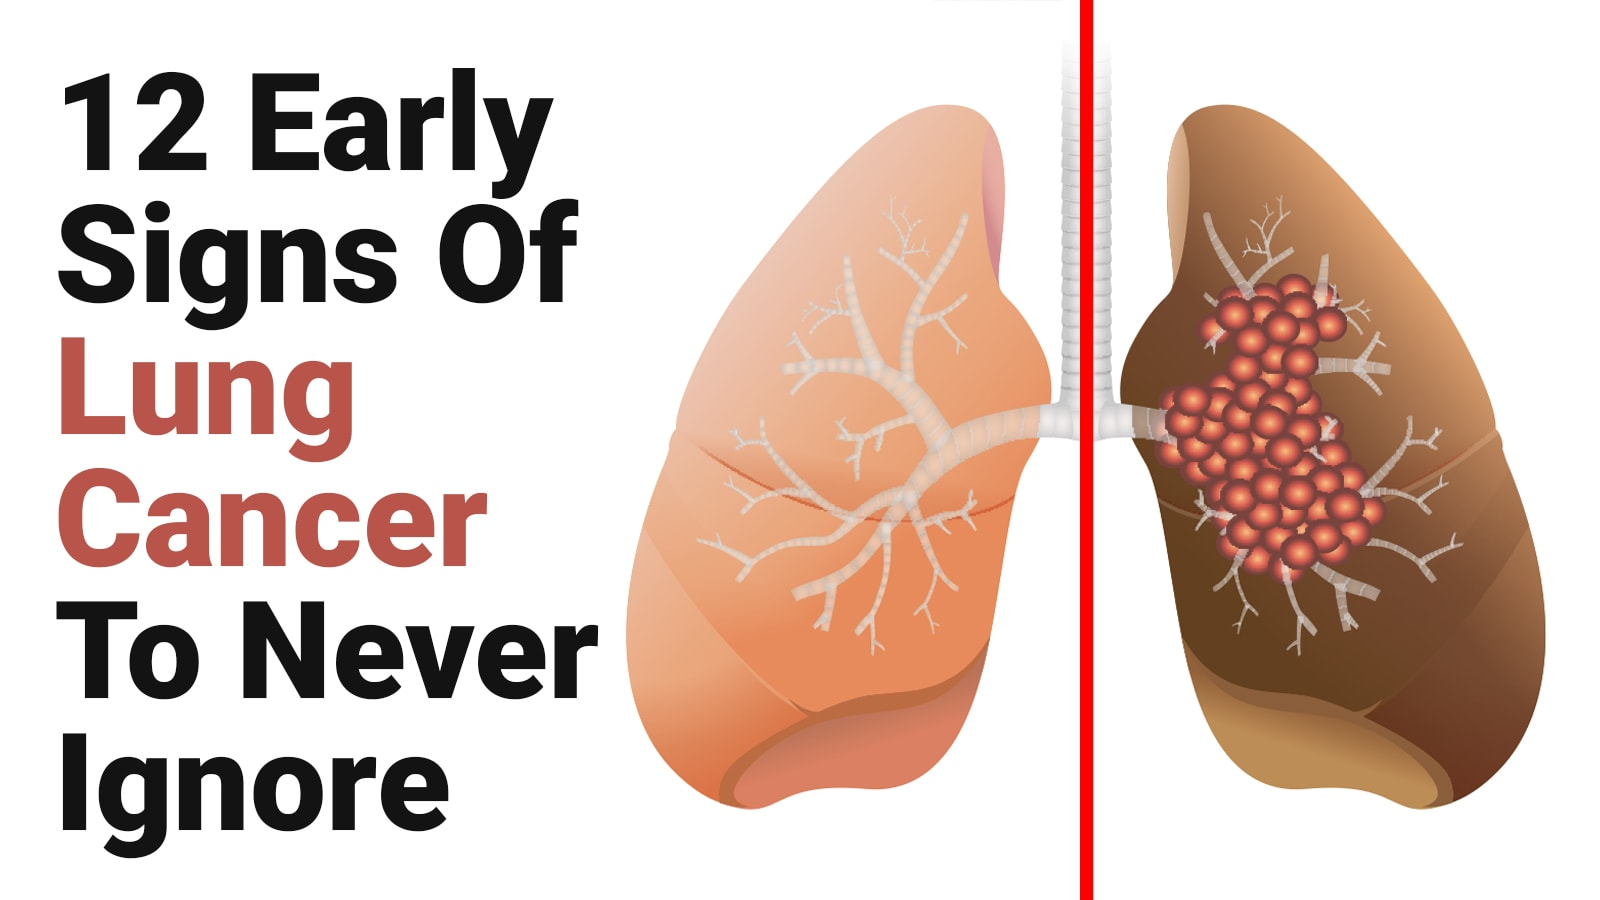 12 Early Signs Of Lung Cancer To Never Ignore